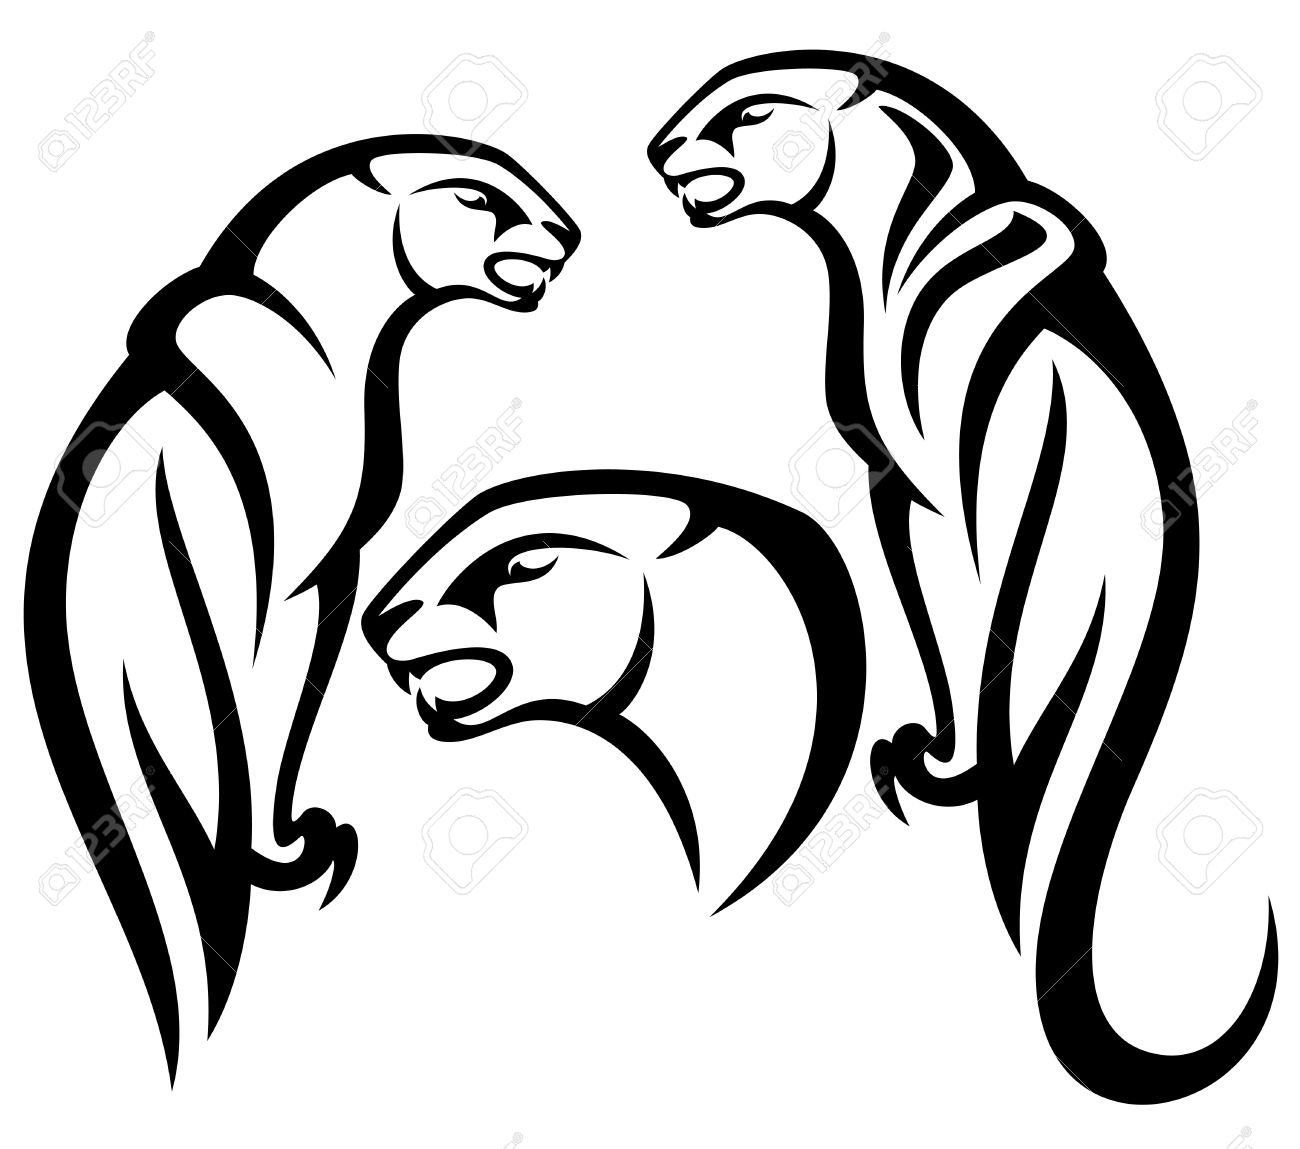 5,773 Panther Stock Vector Illustration And Royalty Free Panther.